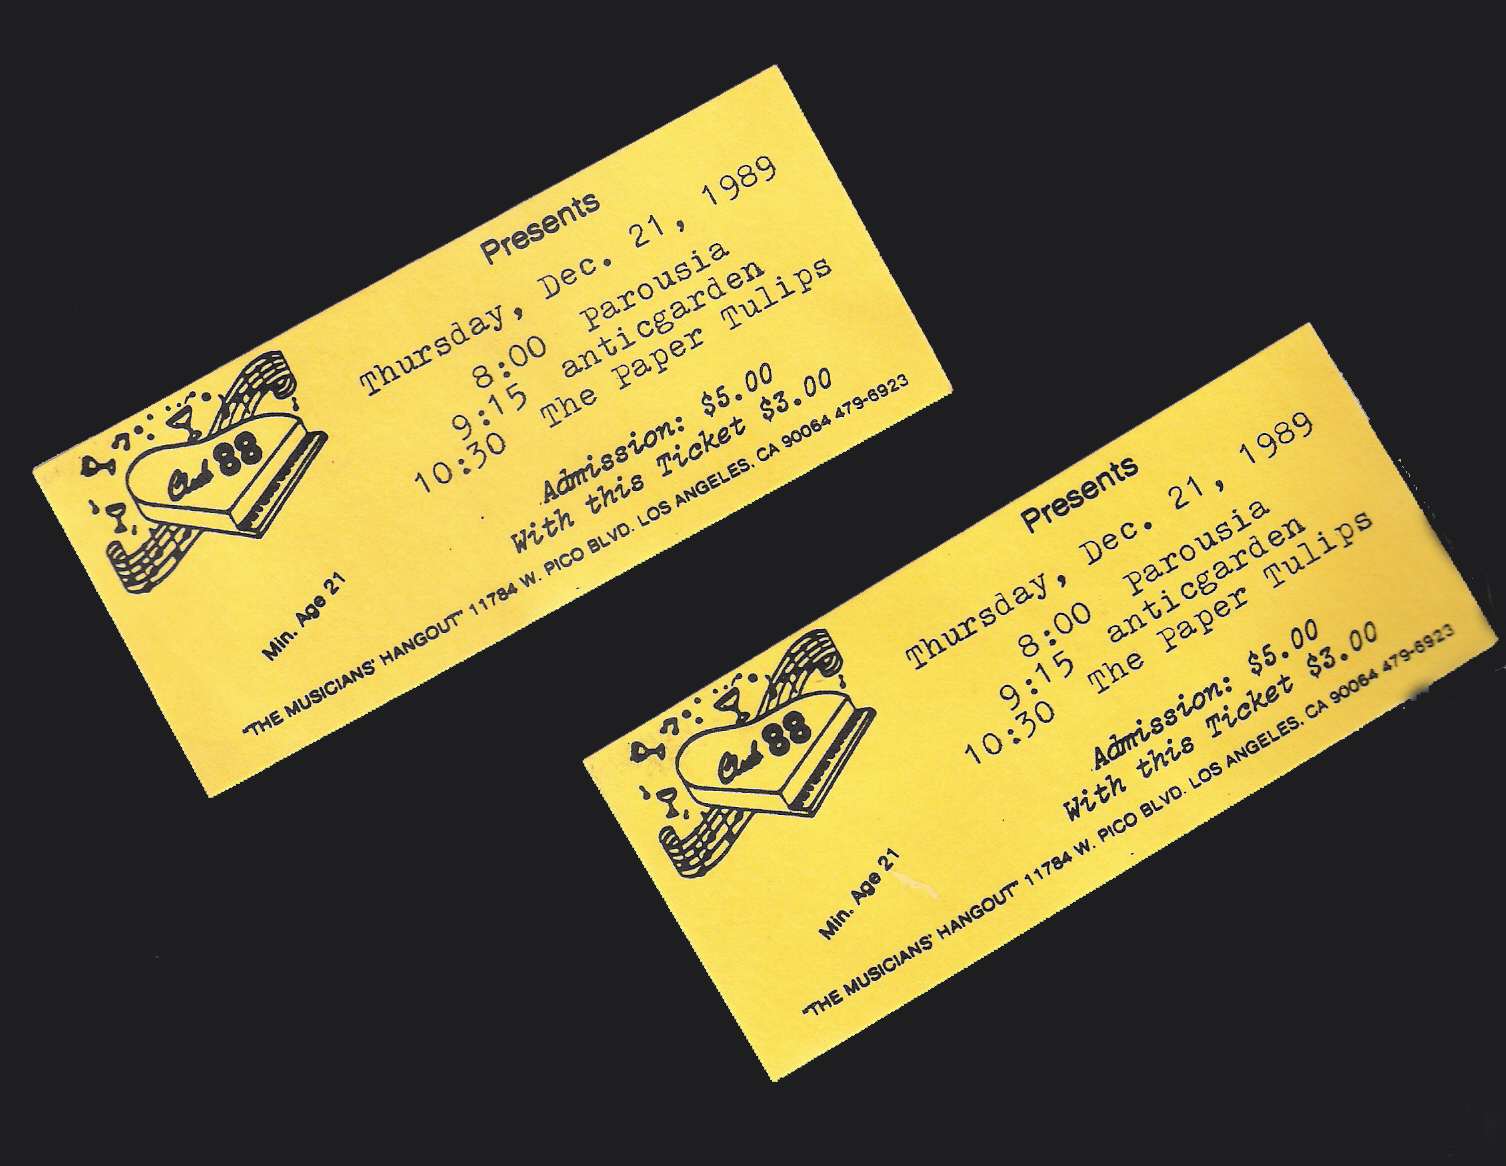 Tickets to Club 88 - December 21, 1989